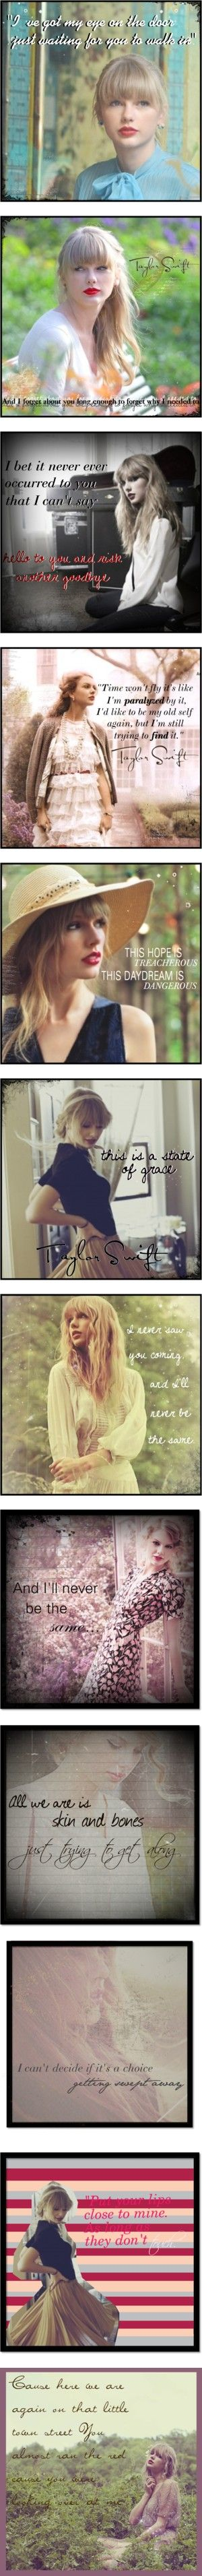 """""""Taylor Swift Lyrics"""" by ditzy22 ❤ liked on Polyvore"""